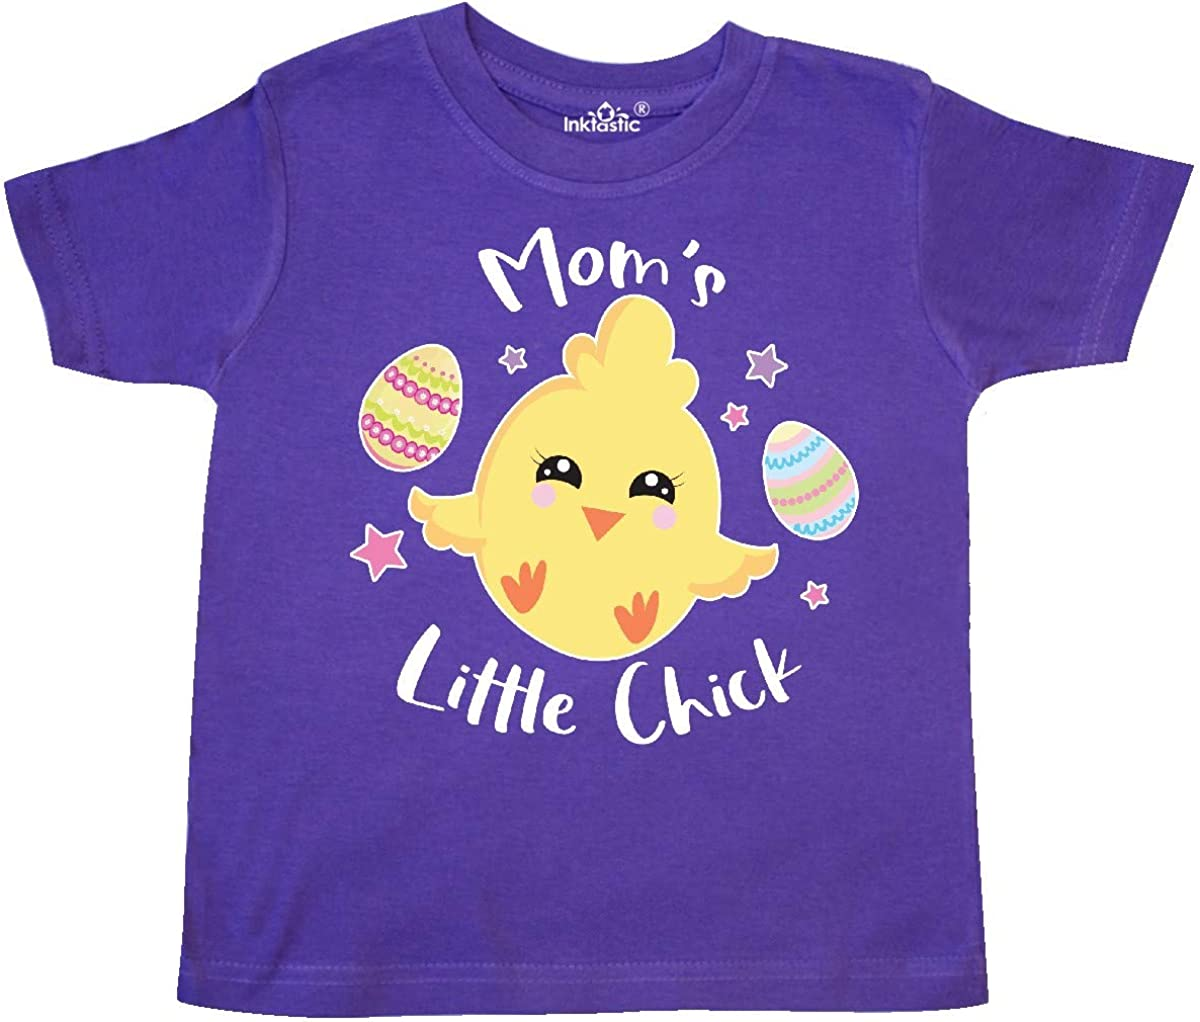 inktastic Happy Easter Moms Little Chick Toddler T-Shirt